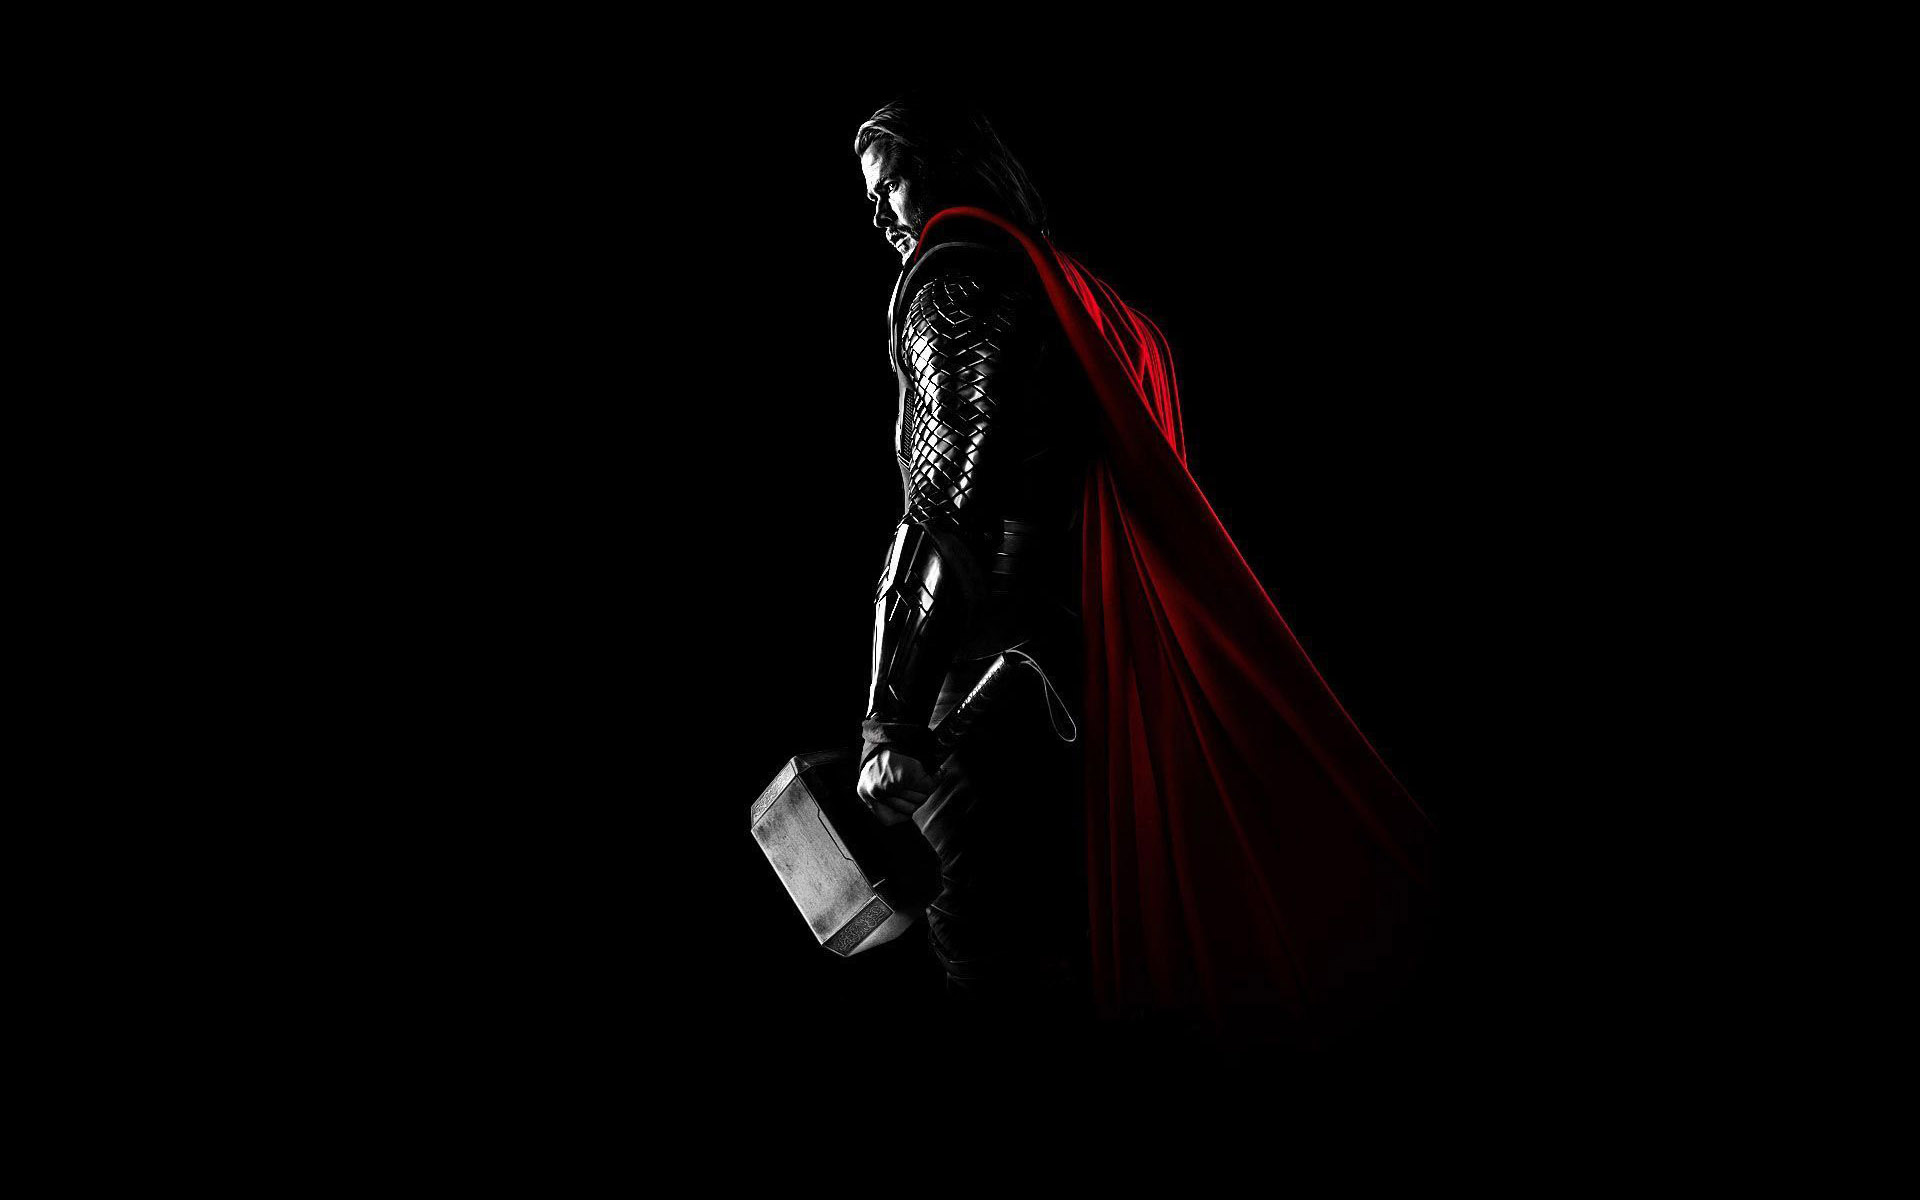 Movie Hd Wallpapers: Thor Wallpapers And Backgrounds Full HD